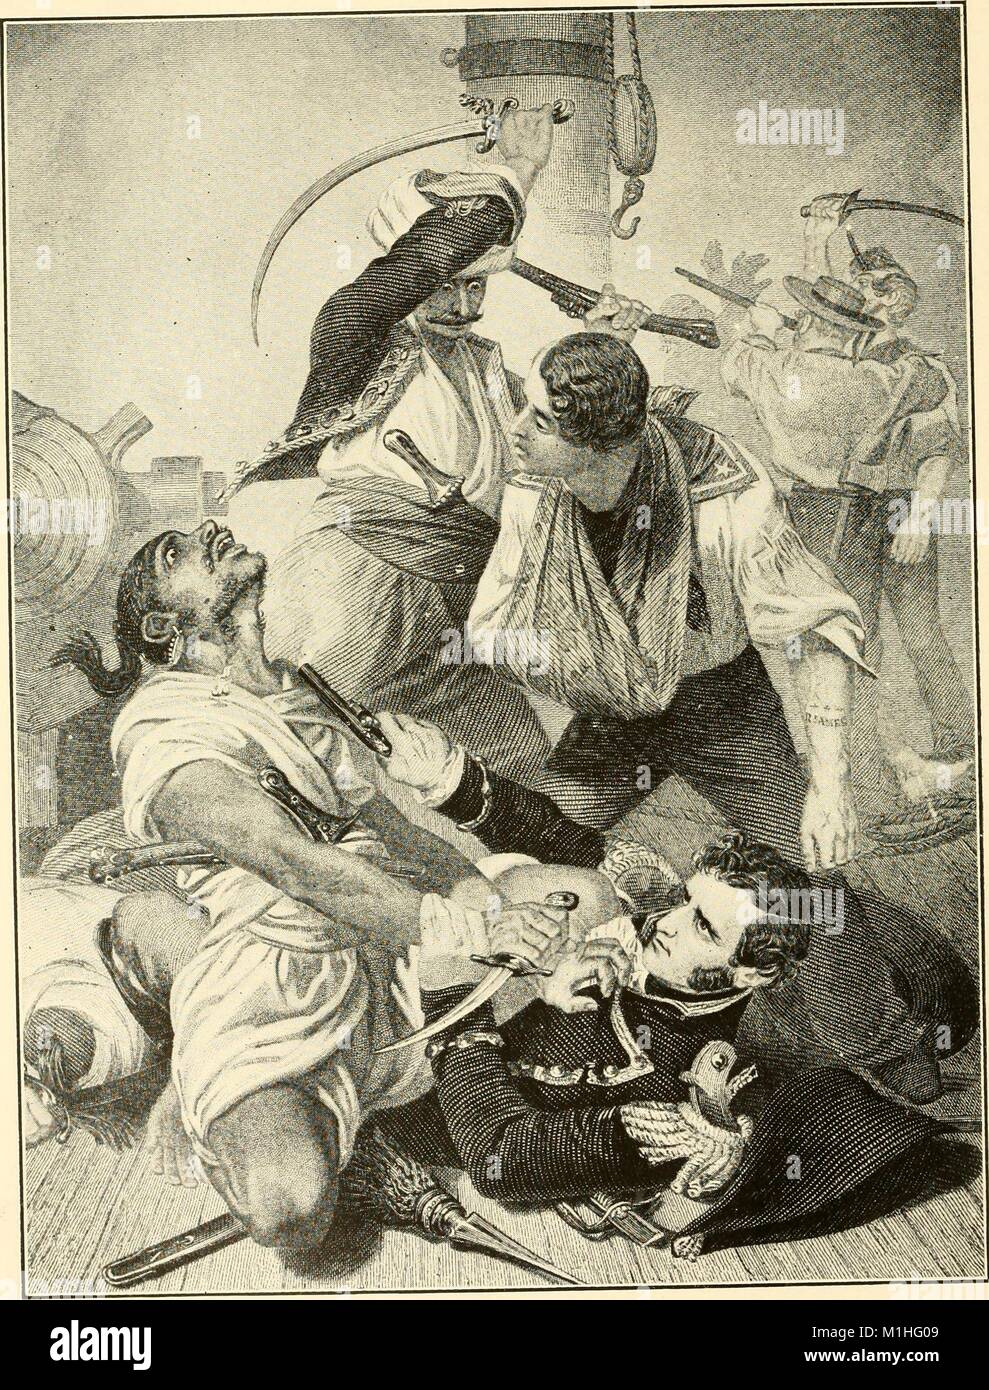 Black and white illustration, captioned 'Decatur's Conflict with the Algernine at Tripoli, ' depicting - Stock Image